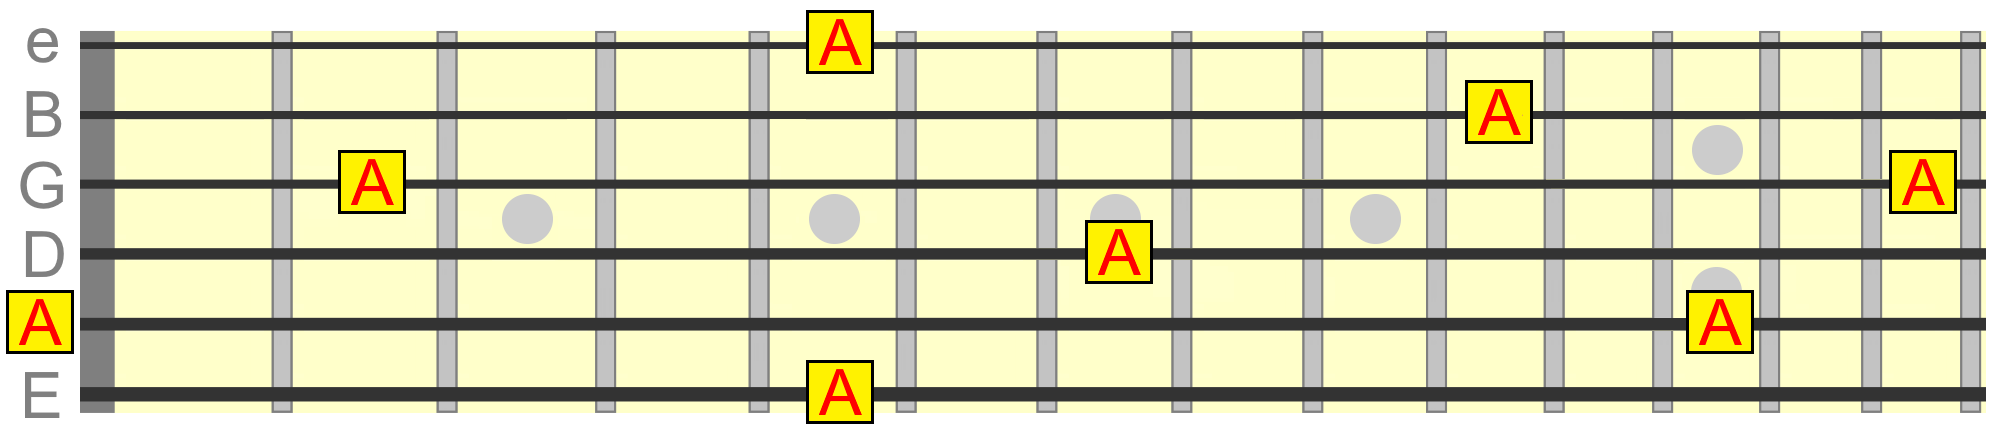 5 Powerful Fretboard Memorization Exercises